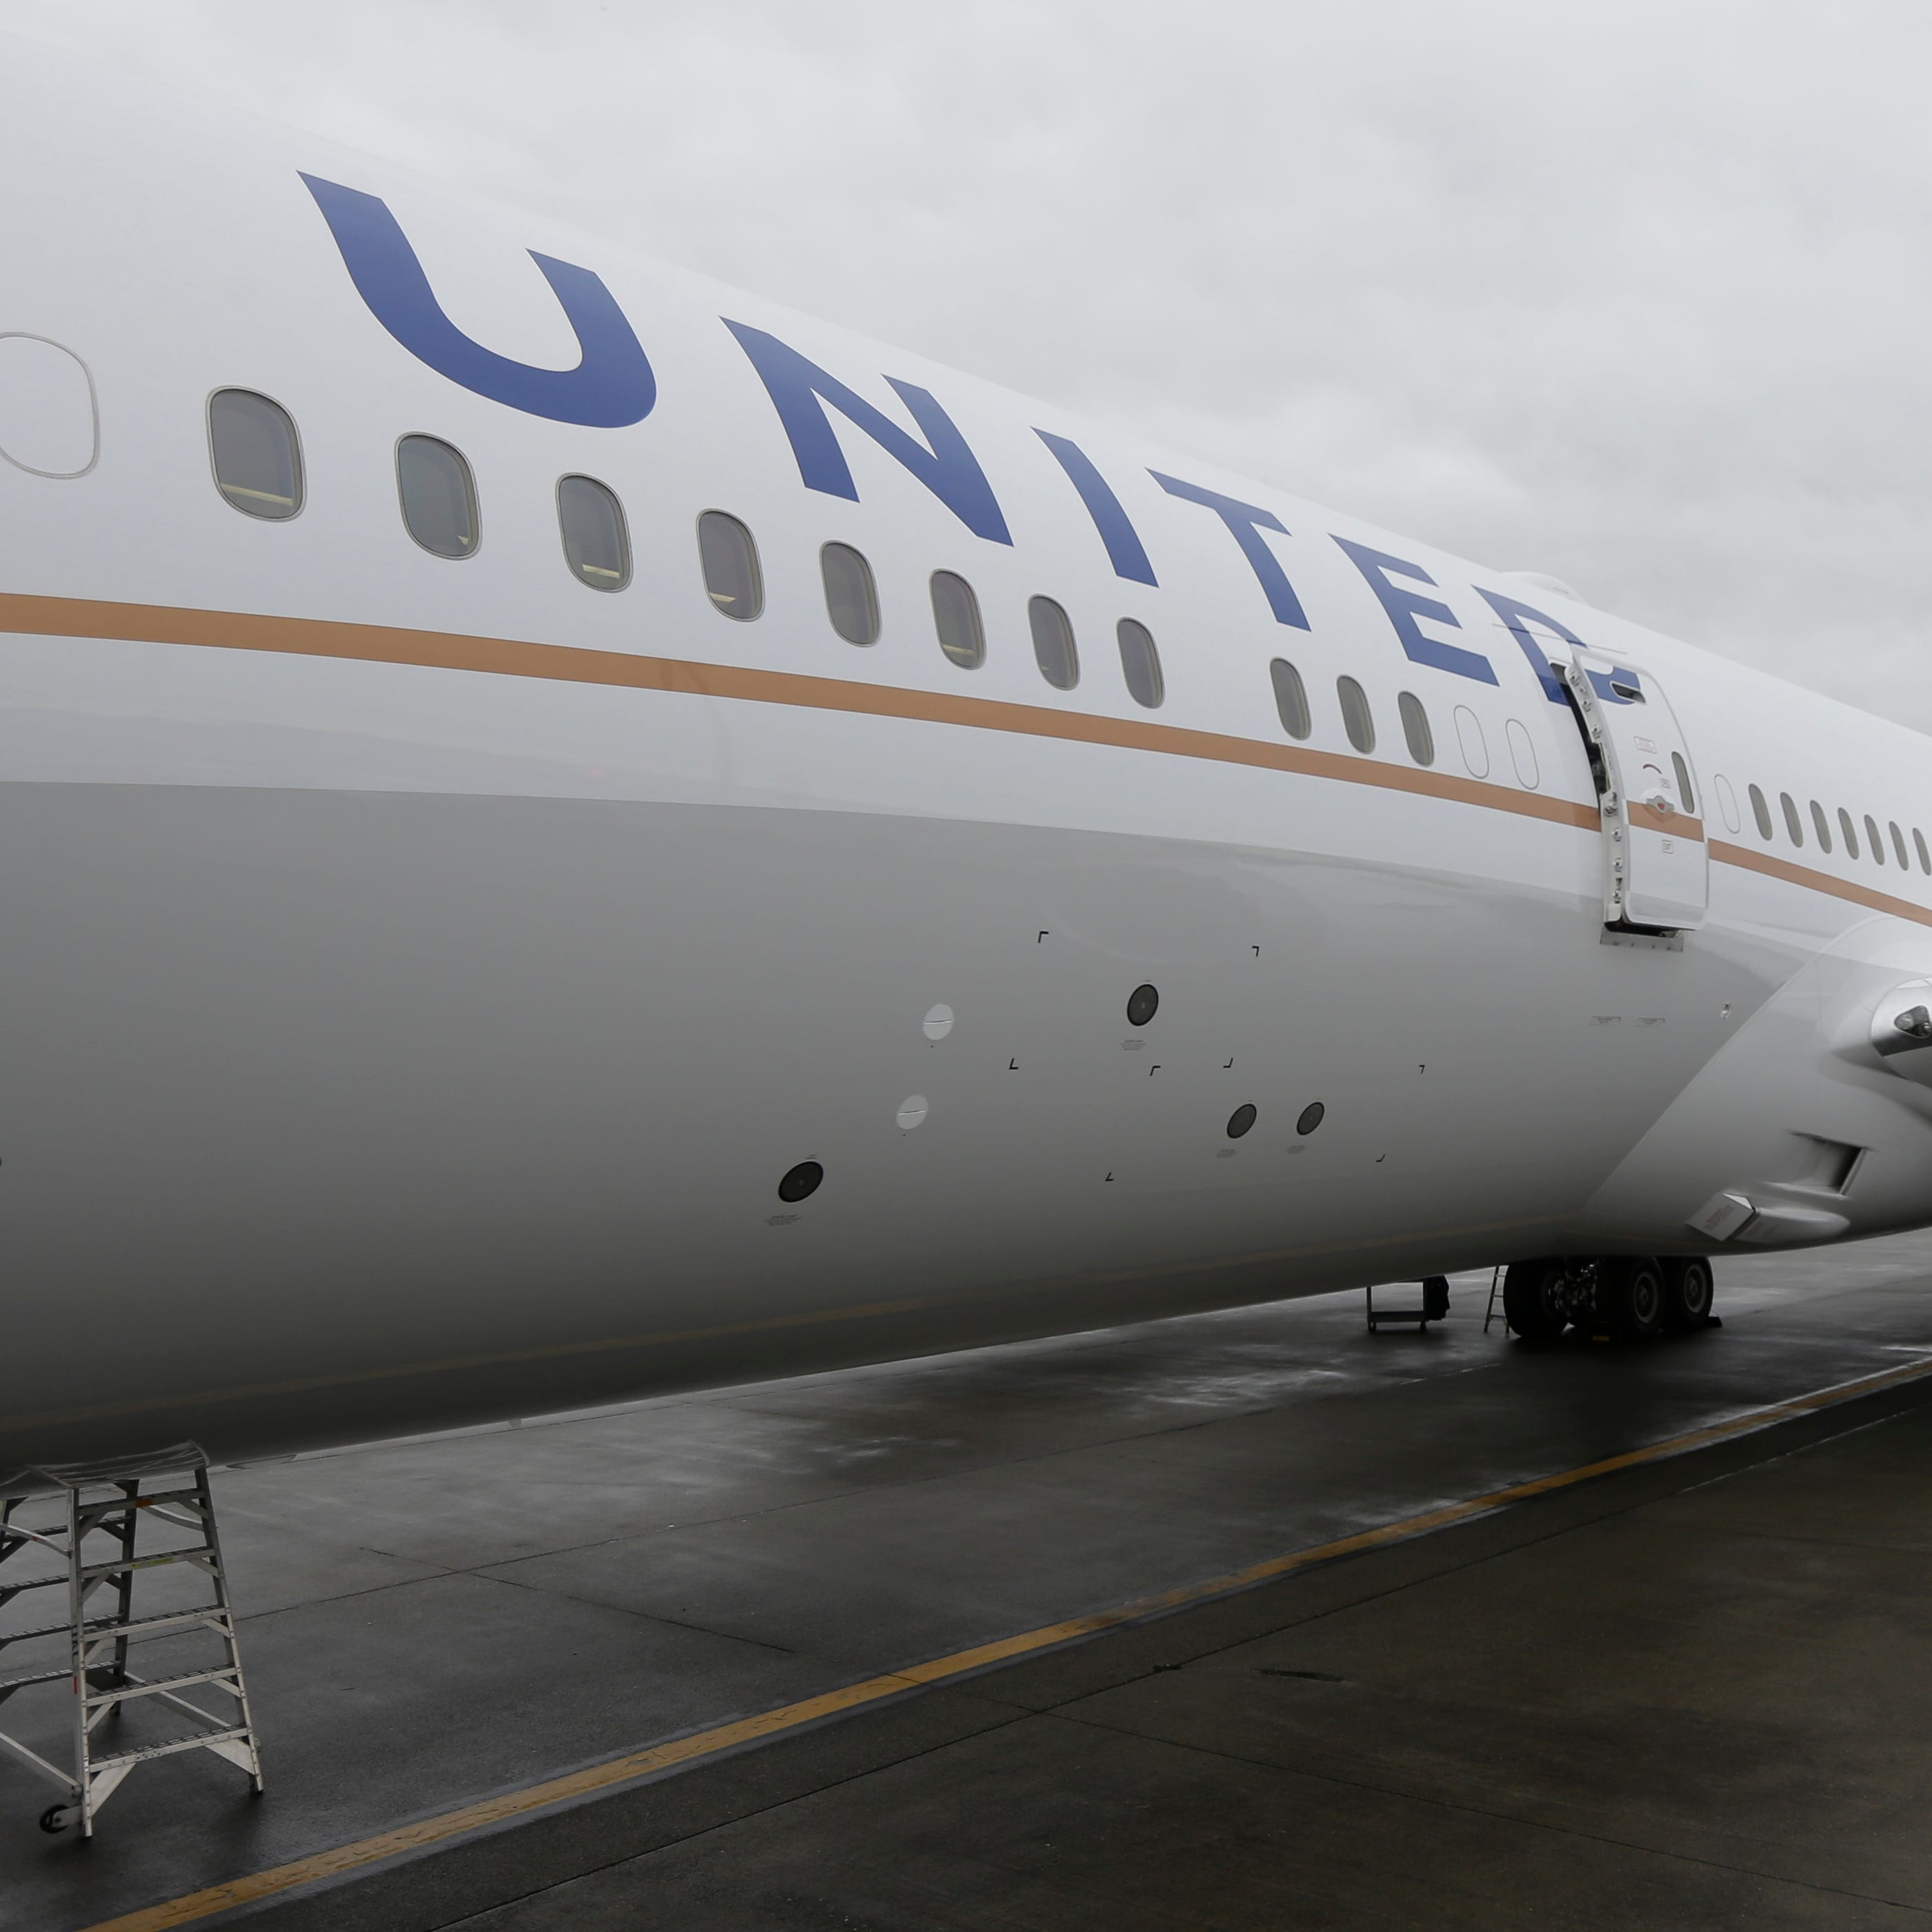 A new United Airlines Boeing 787-9 is shown during final configuration and maintenance  work at Seattle-Tacoma International Airport on Jan. 26, 2016.